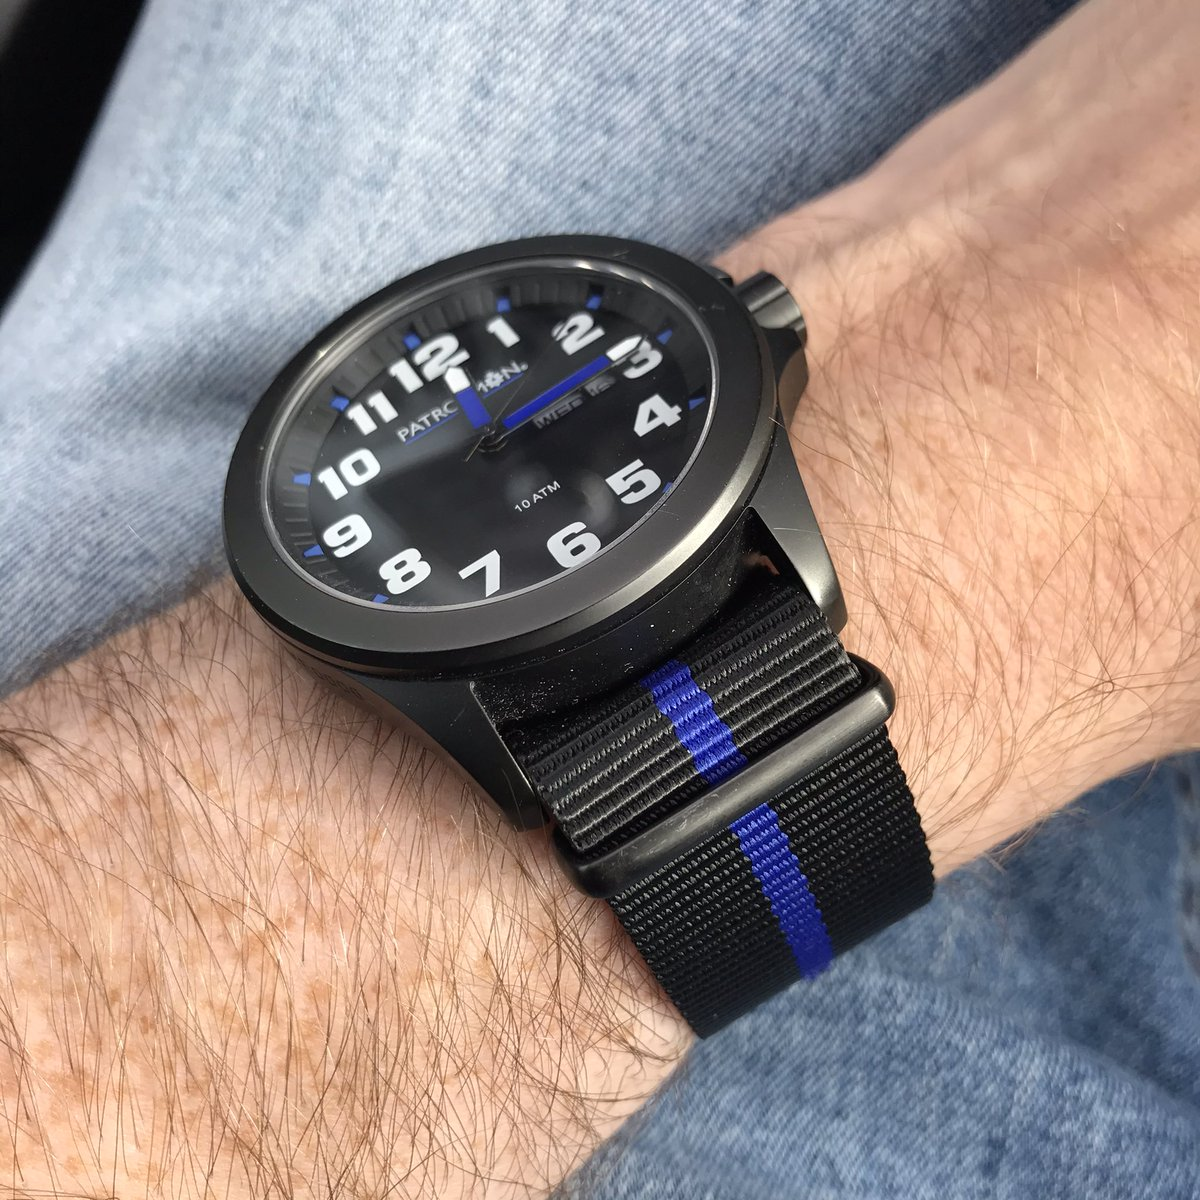 Probably the best timepiece I've ever owned and engraved with my collar number! #patrolmanwatches #offduty #natostrap #thinblueline